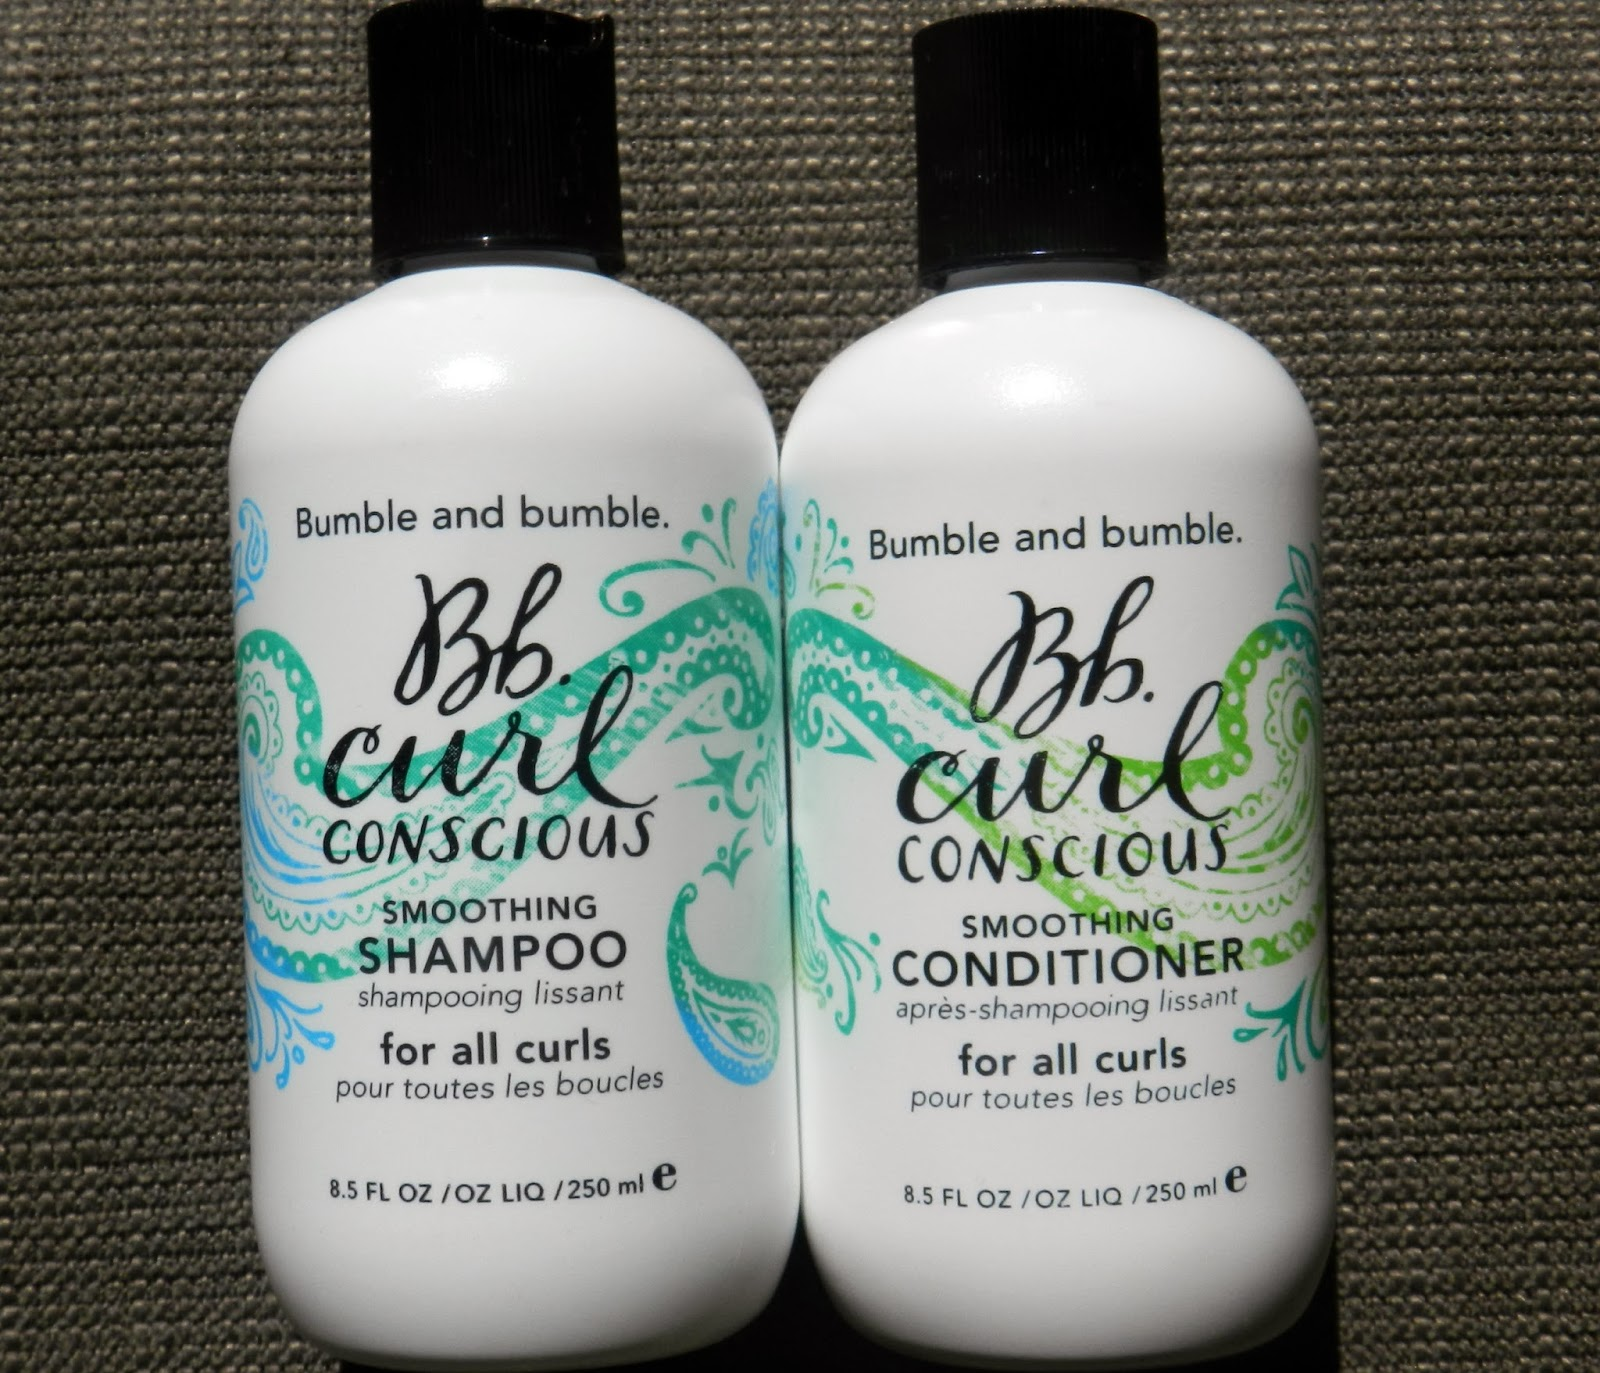 Bumble Bumble Curl Conscious Shampoo & Conditioner